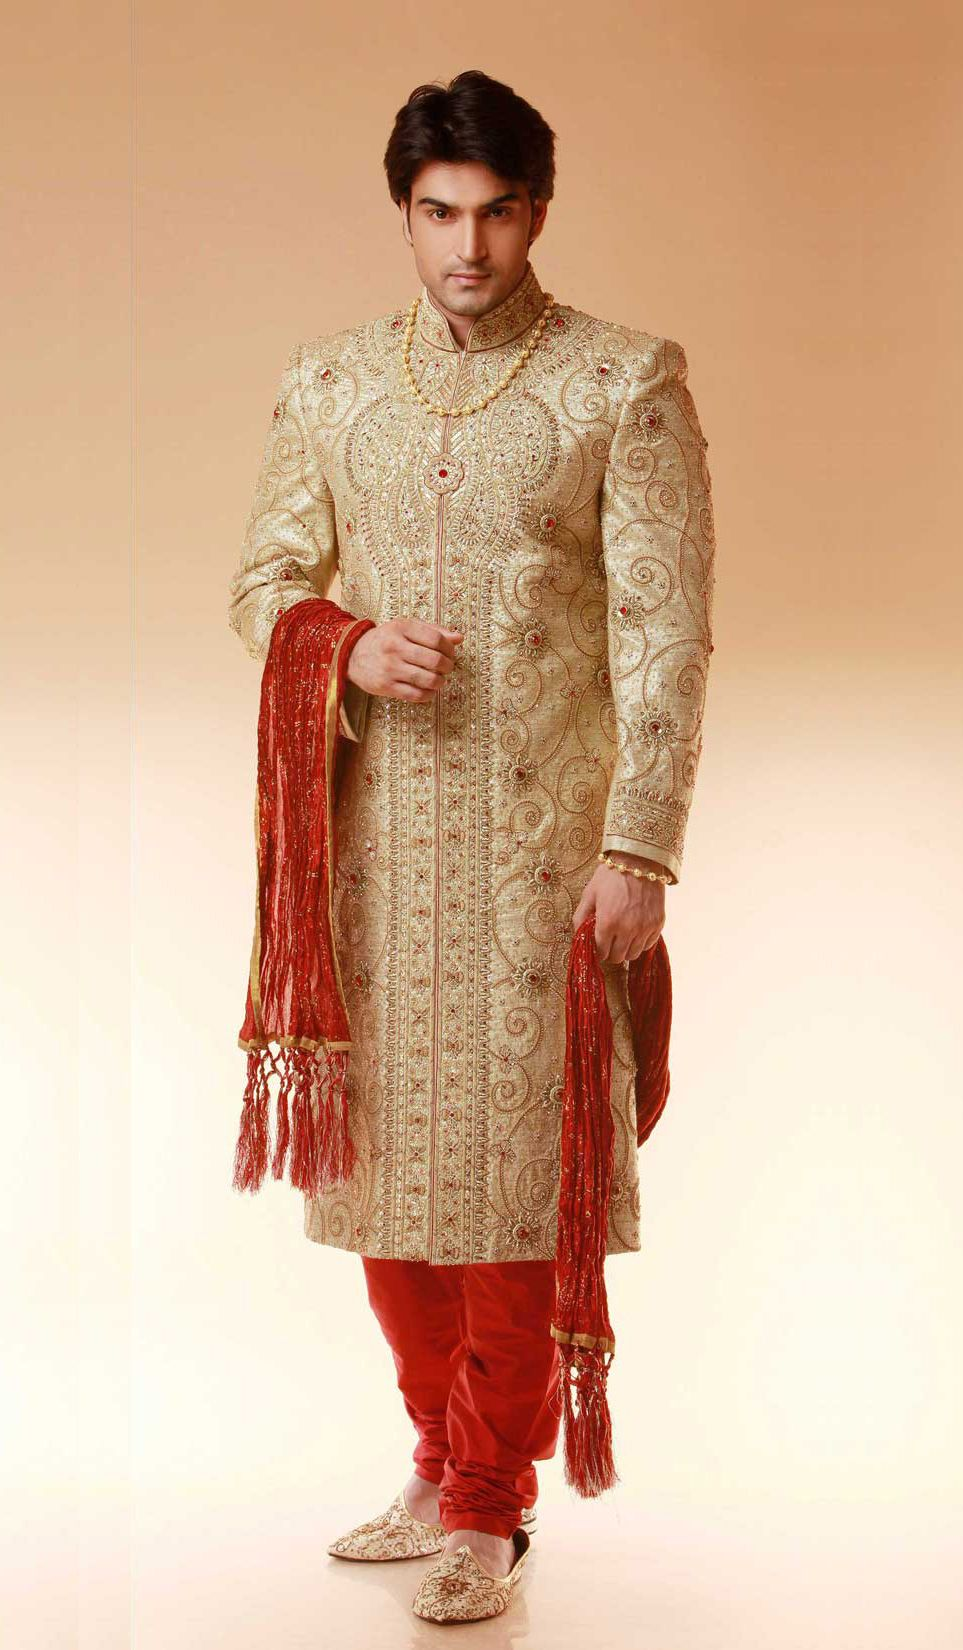 indian male clothing - Google Search | others3 | Pinterest | Indian ...